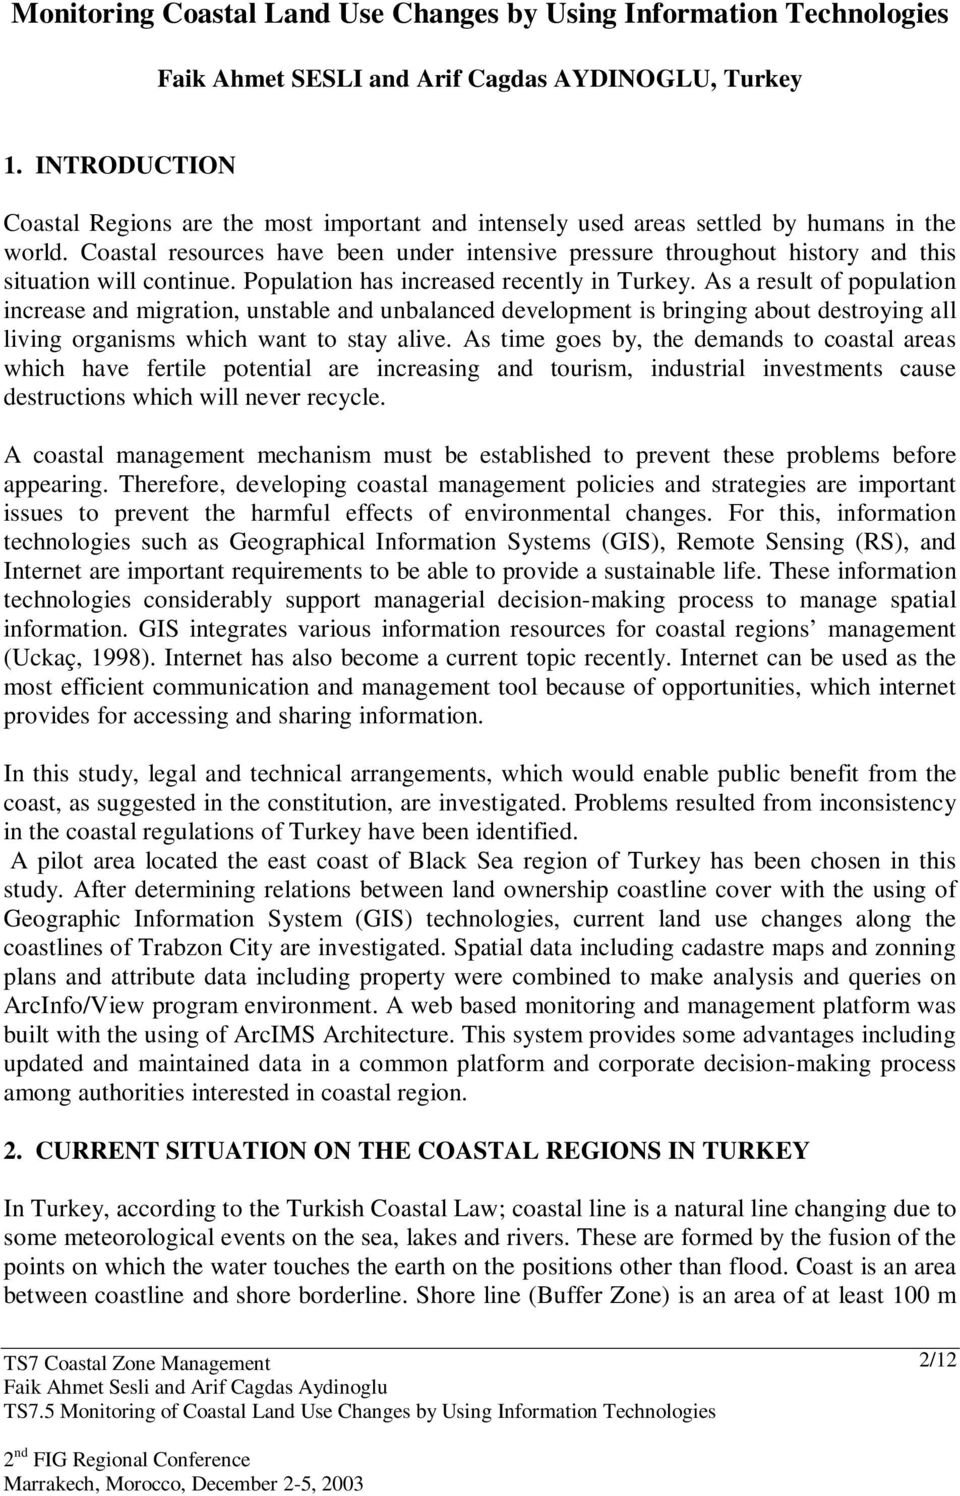 Coastal resources have been under intensive pressure throughout history and this situation will continue. Population has increased recently in Turkey.